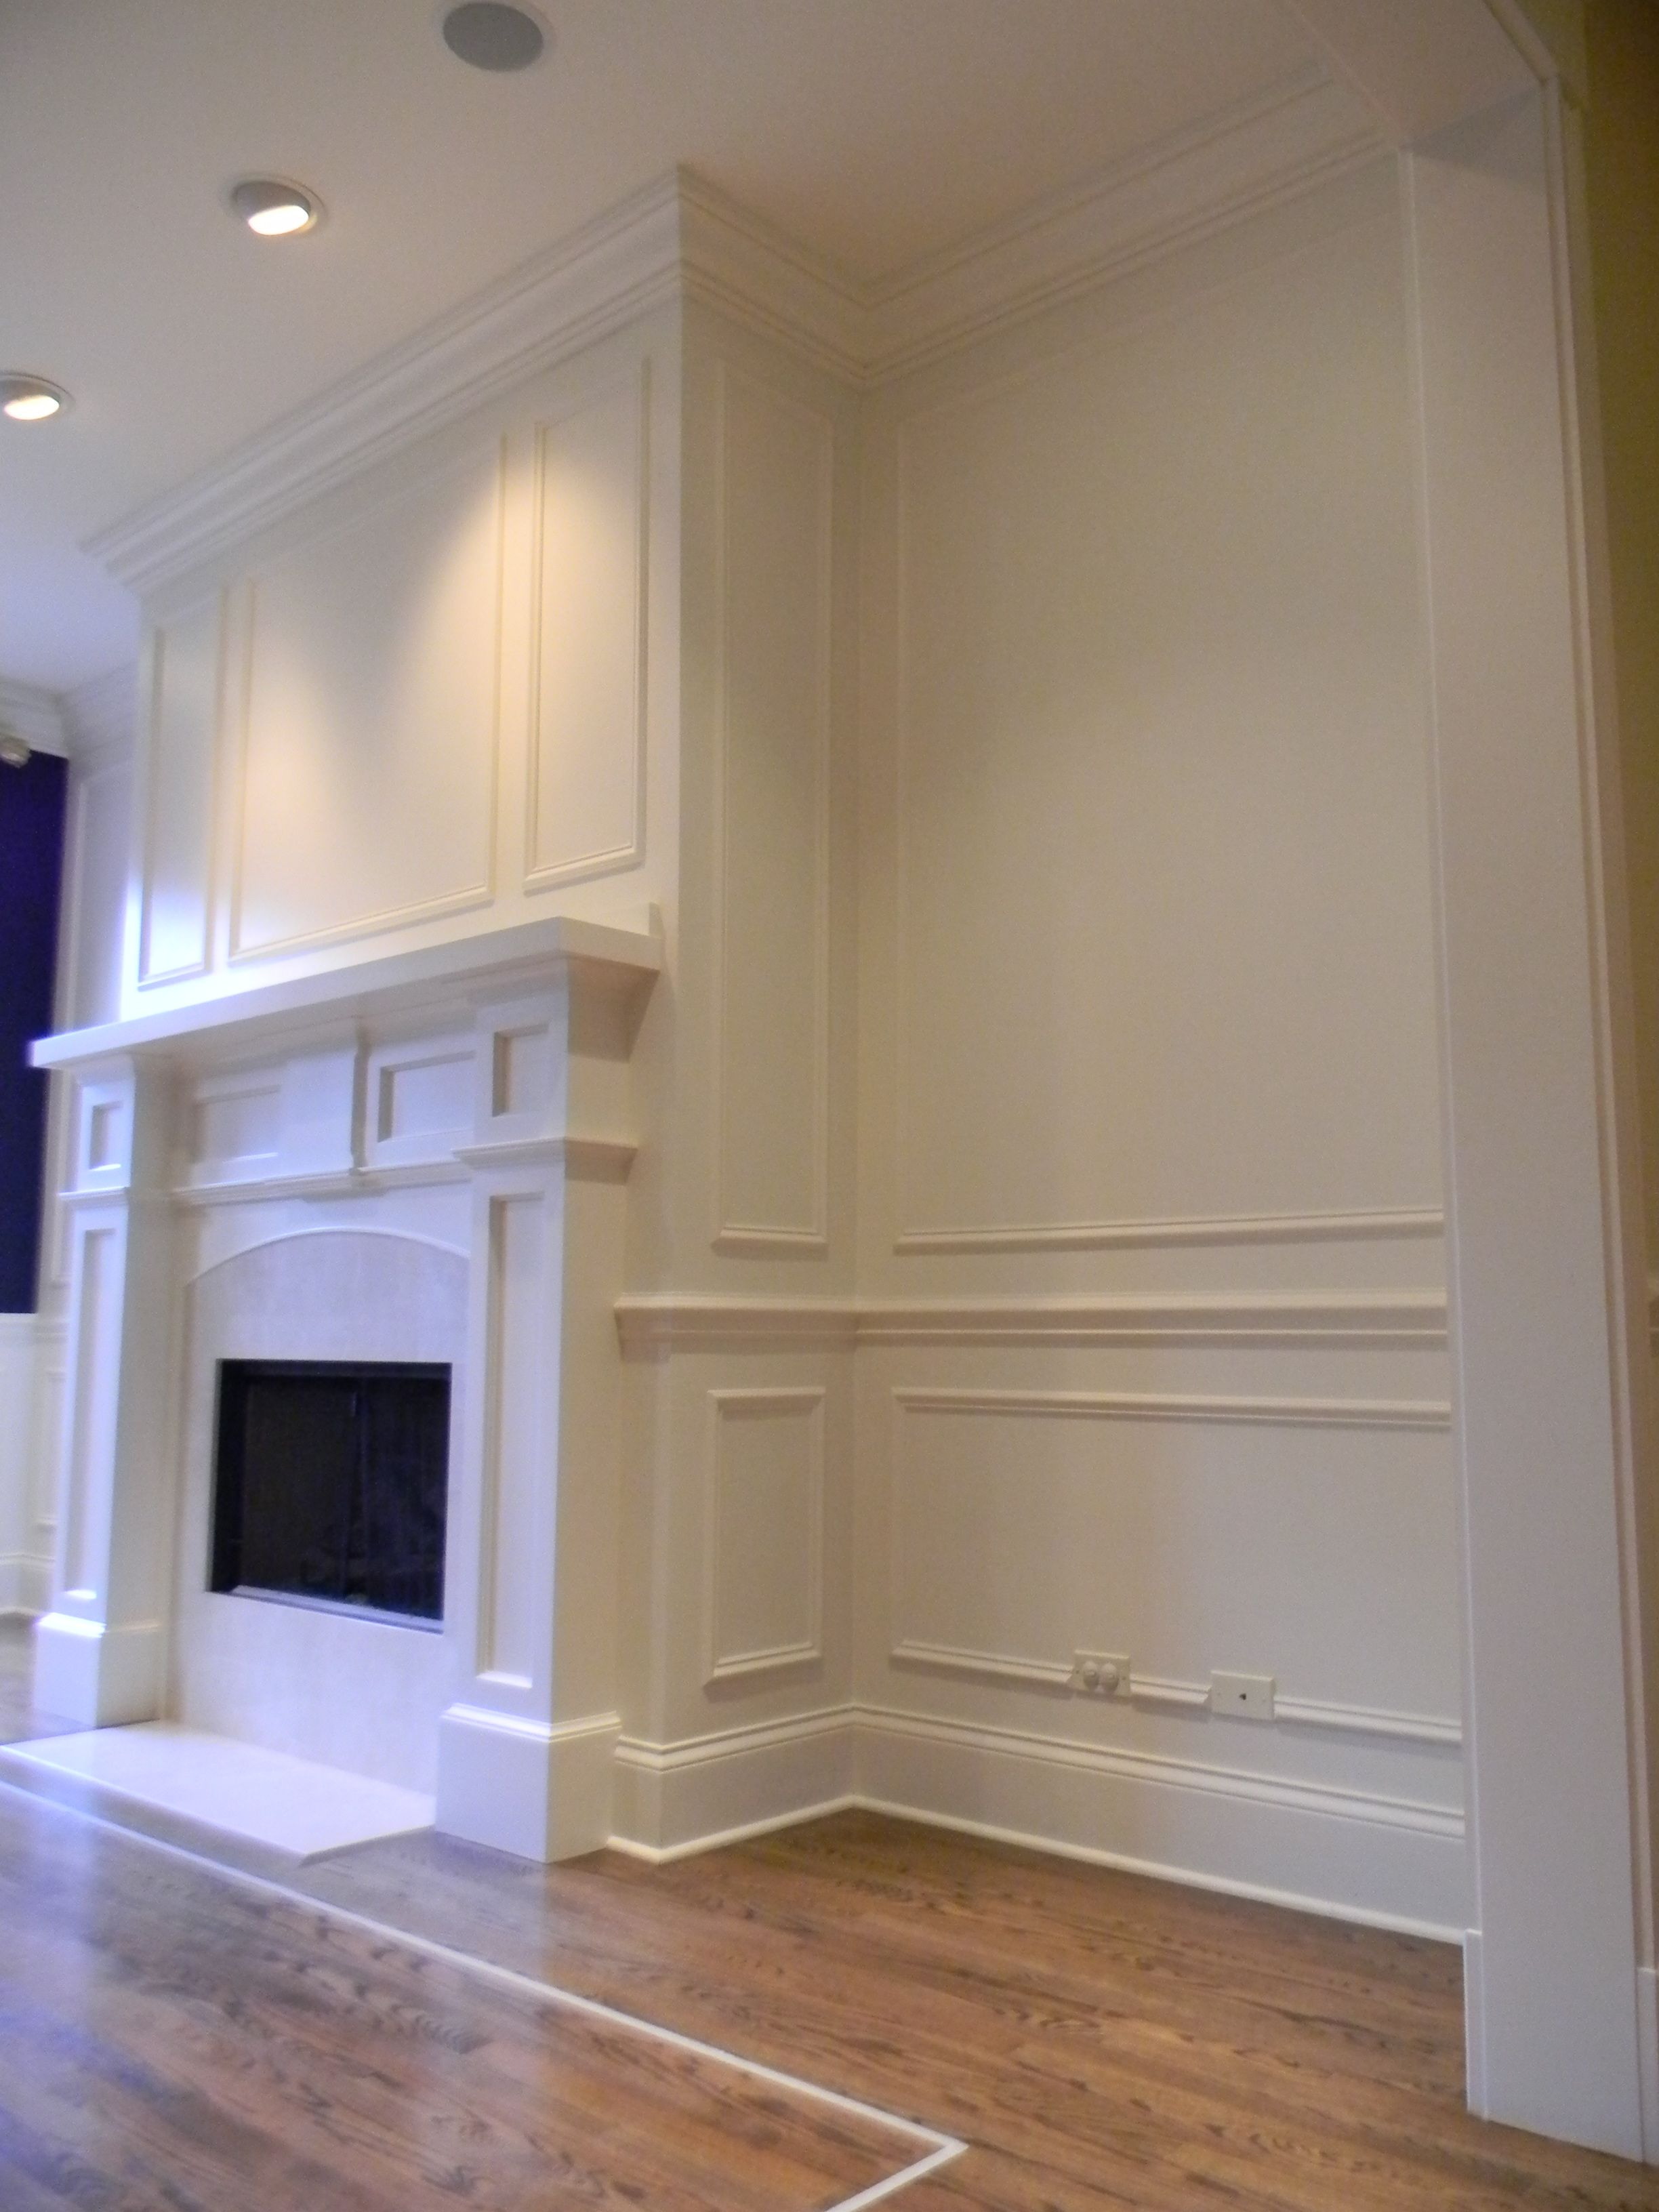 7 wainscoting styles to design every room for your next Images of wainscoting in bedrooms